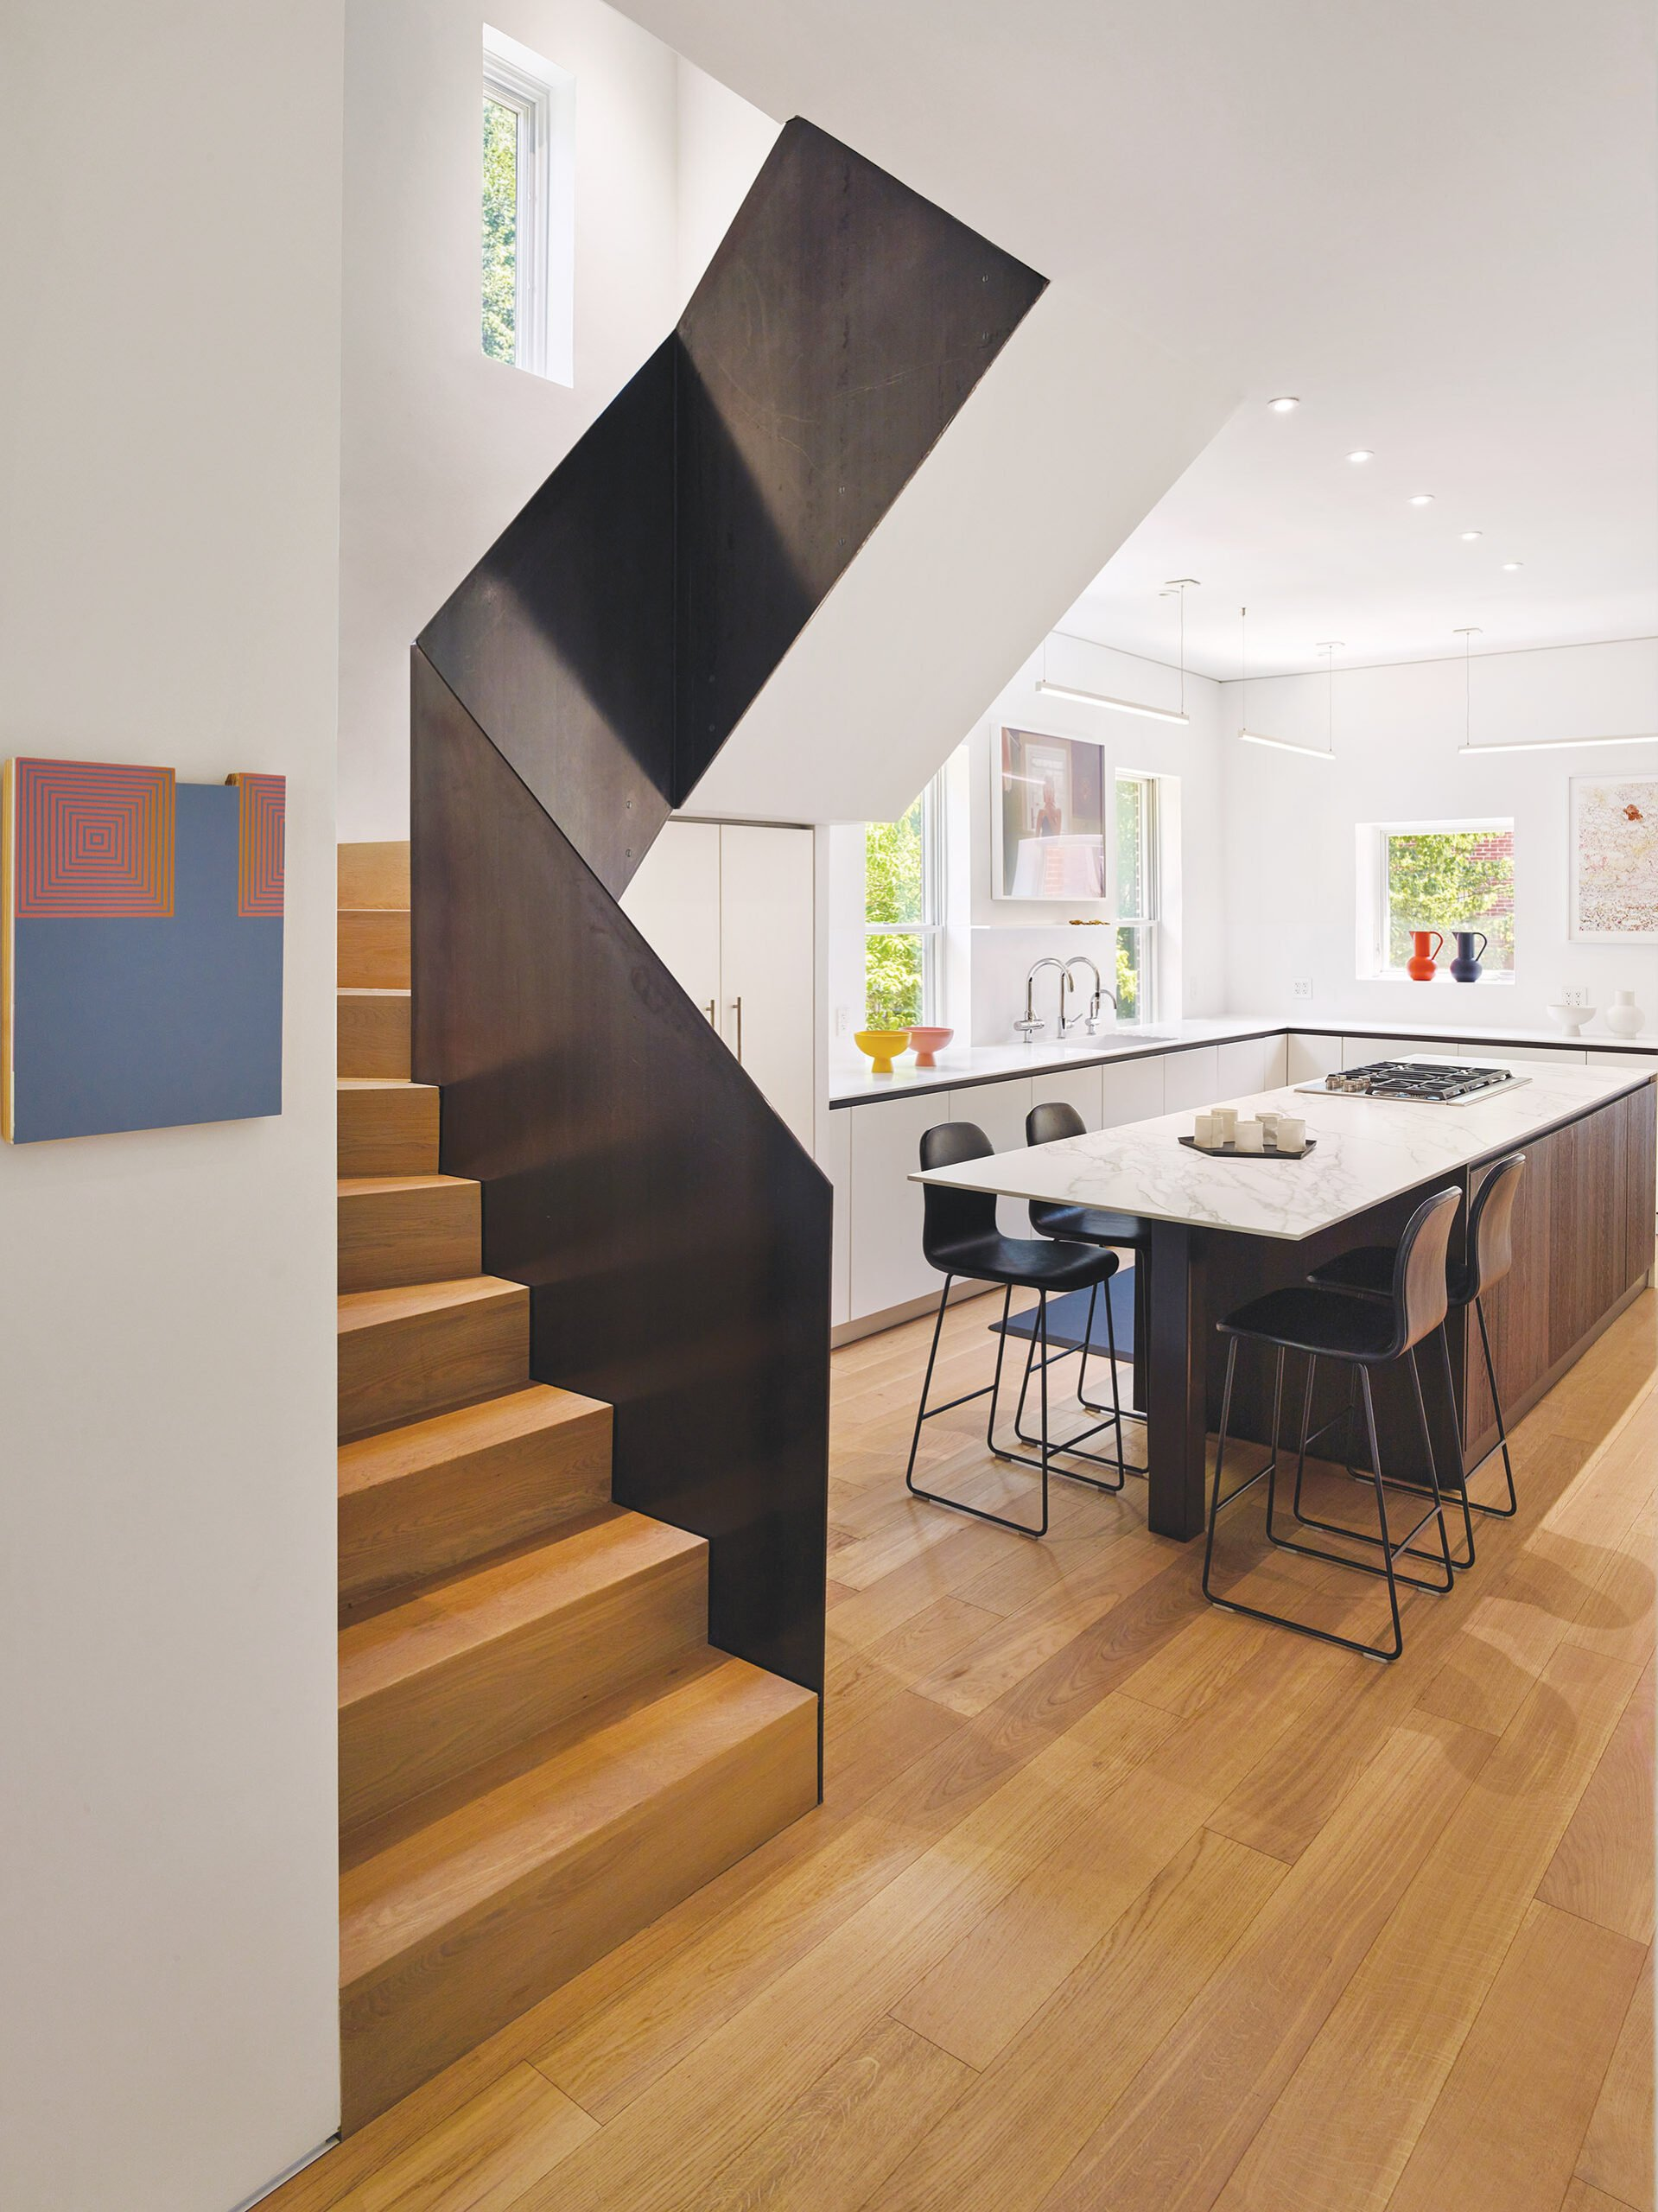 Staircase defined by welded-steel plates. Kitchen by Contemporaria, Cesar cabinetry and anigre wood island.